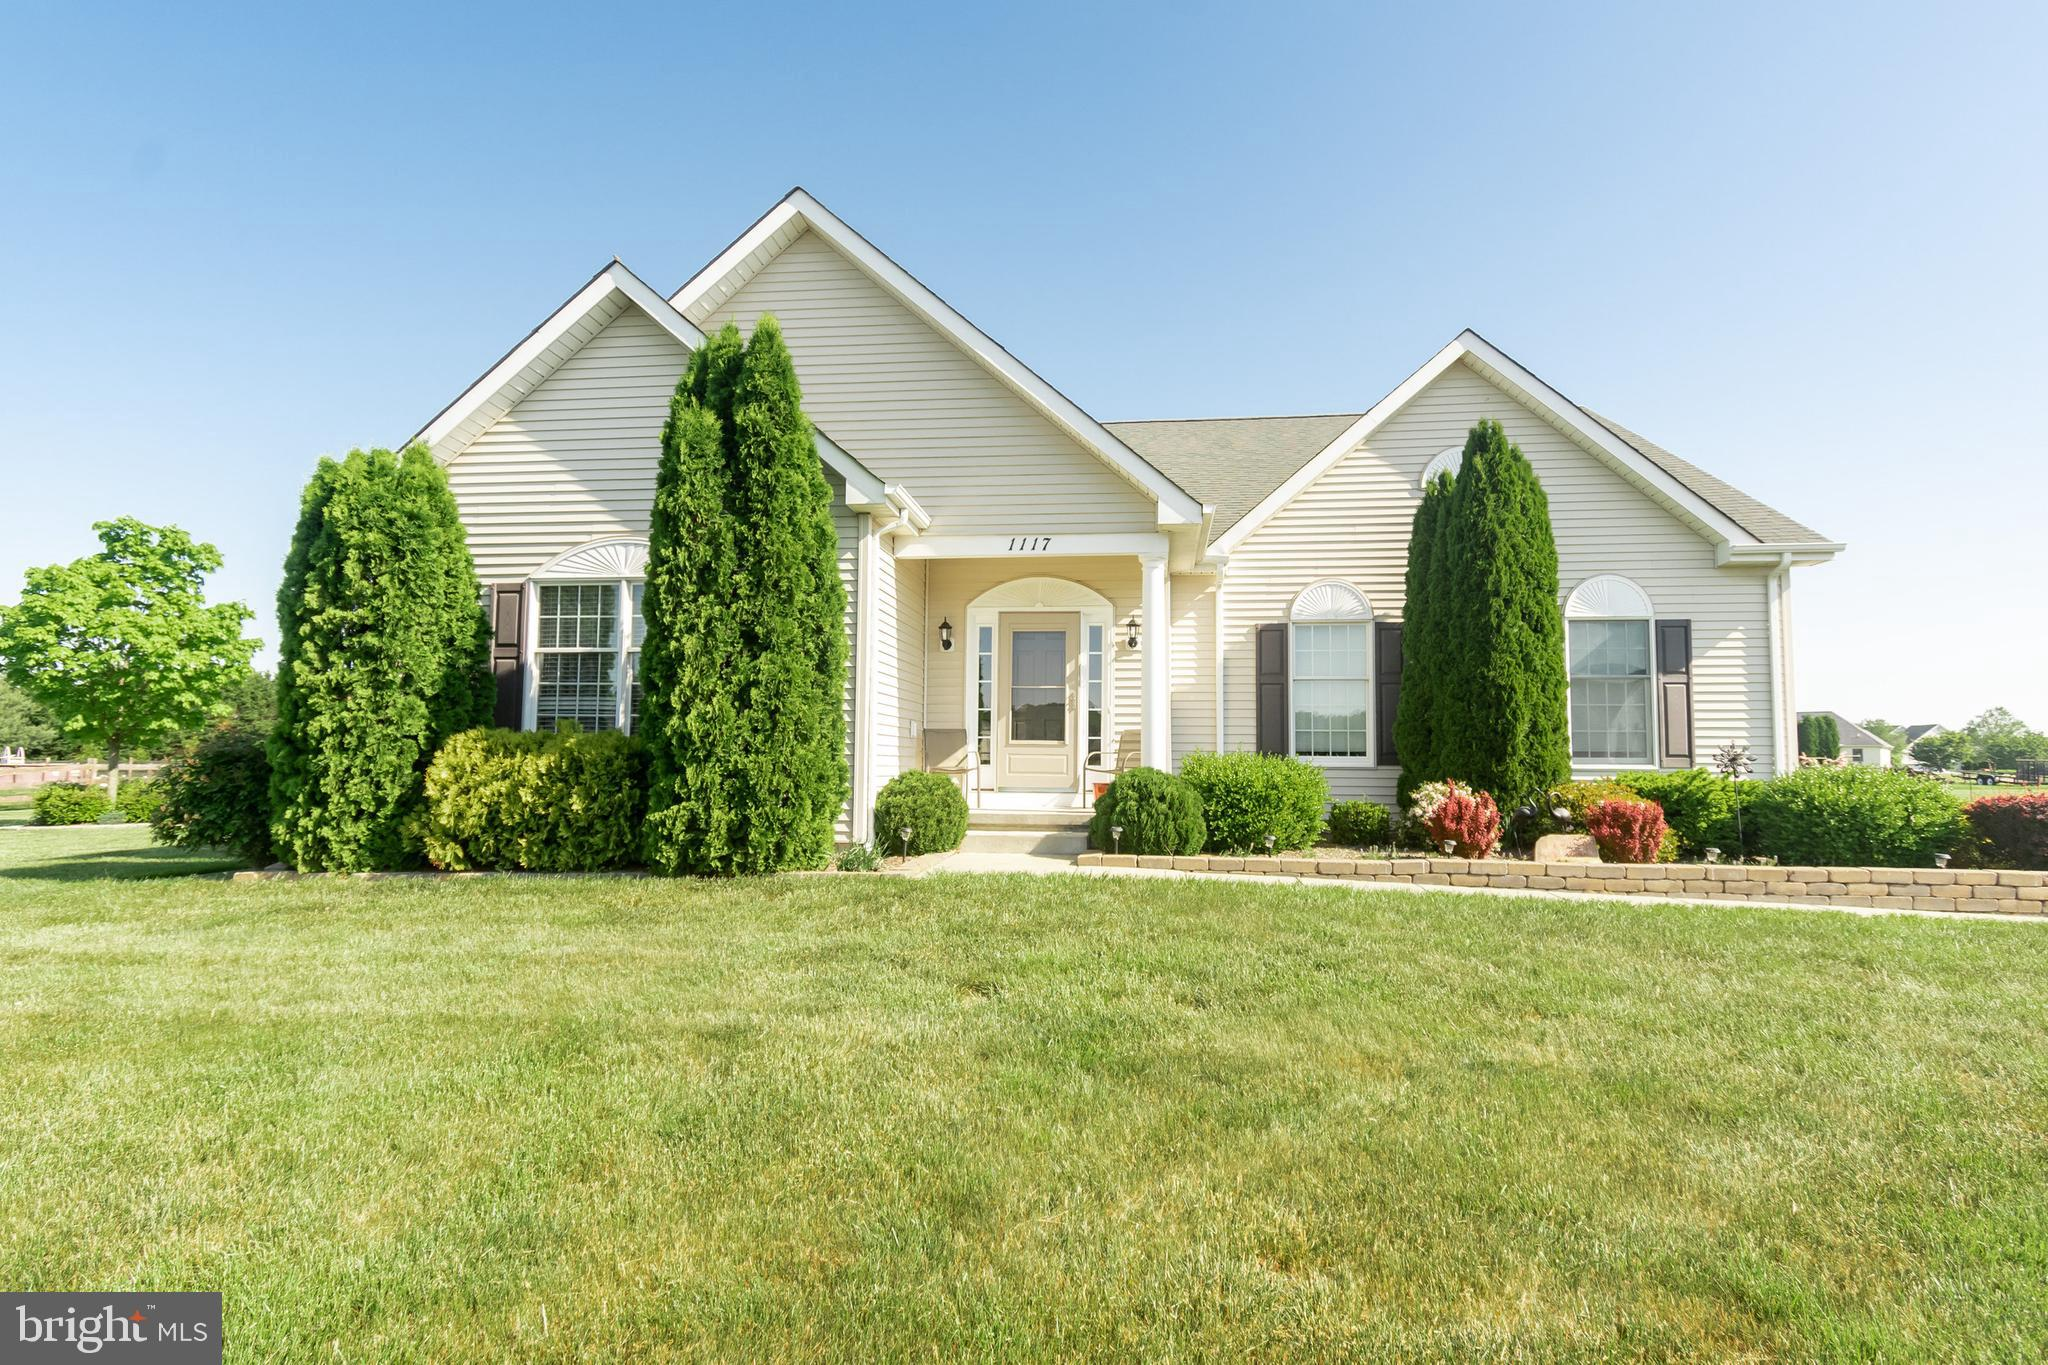 Beautiful, well kept 3 bed, 3.5 bath home on an acre just outside of Clayton, for sale! Jump on this one quickly, it won't last.